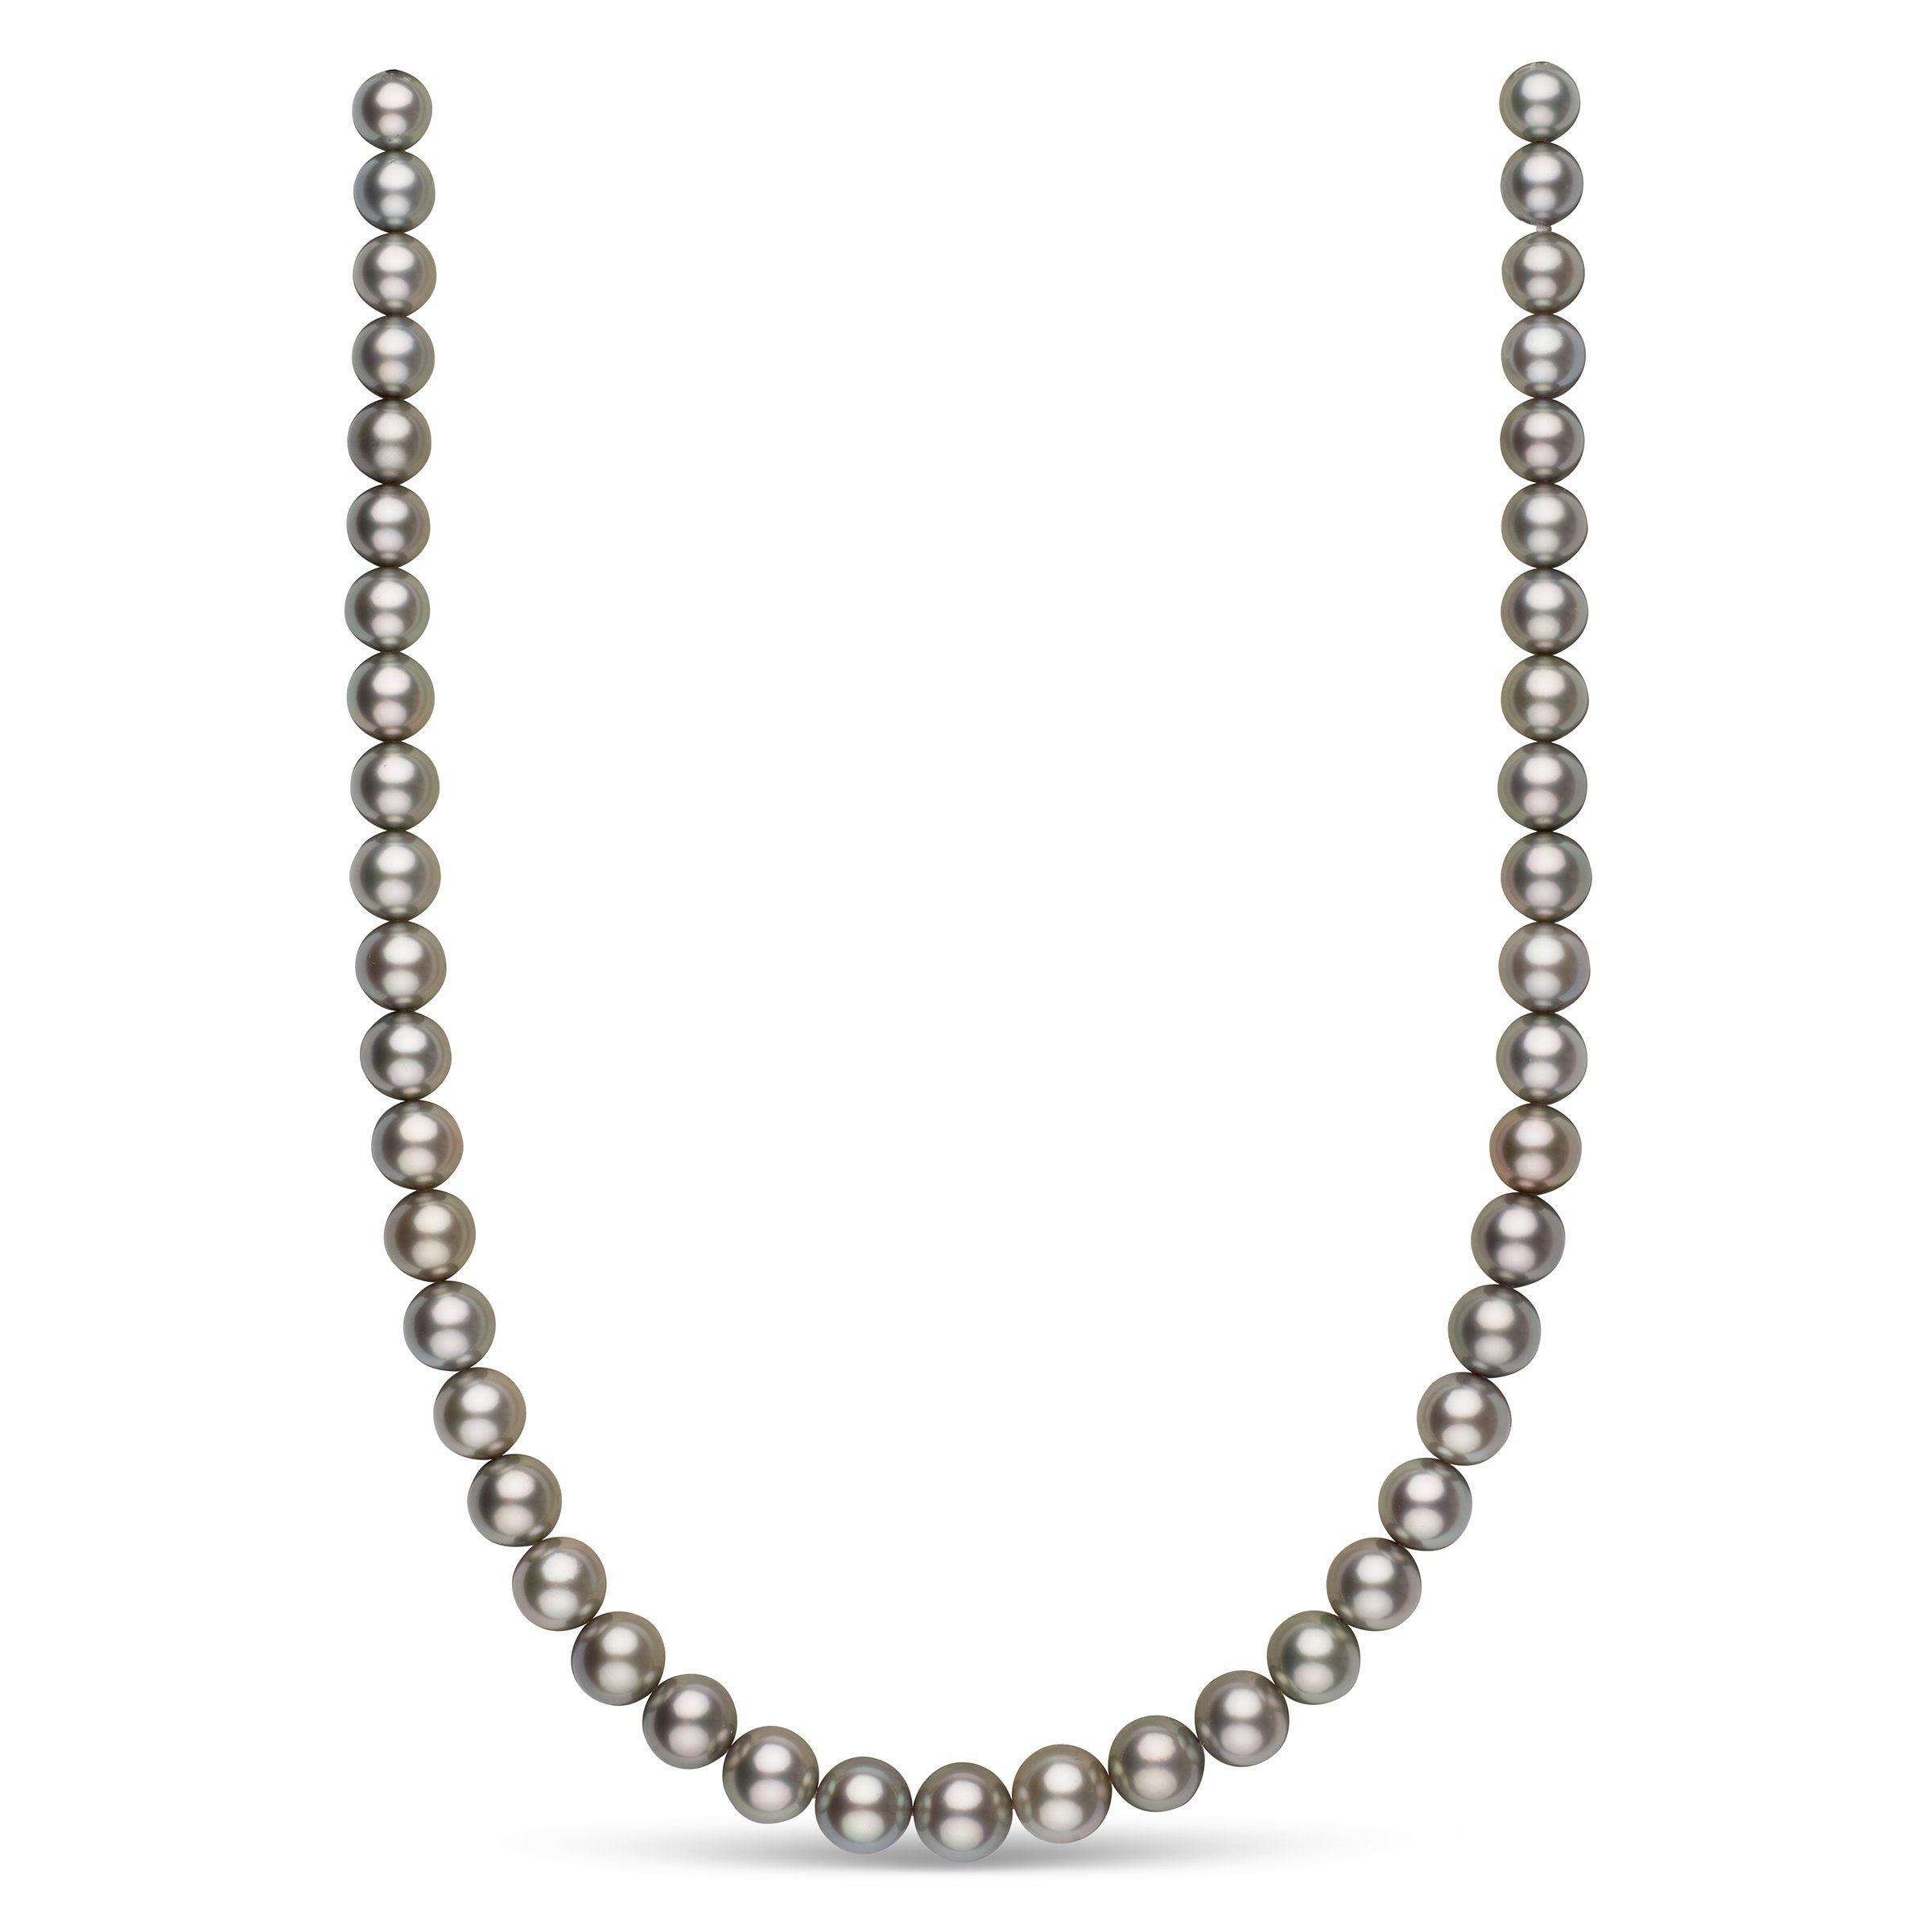 8.5-10.5 mm AAA Tahitian Round Pearl Necklace